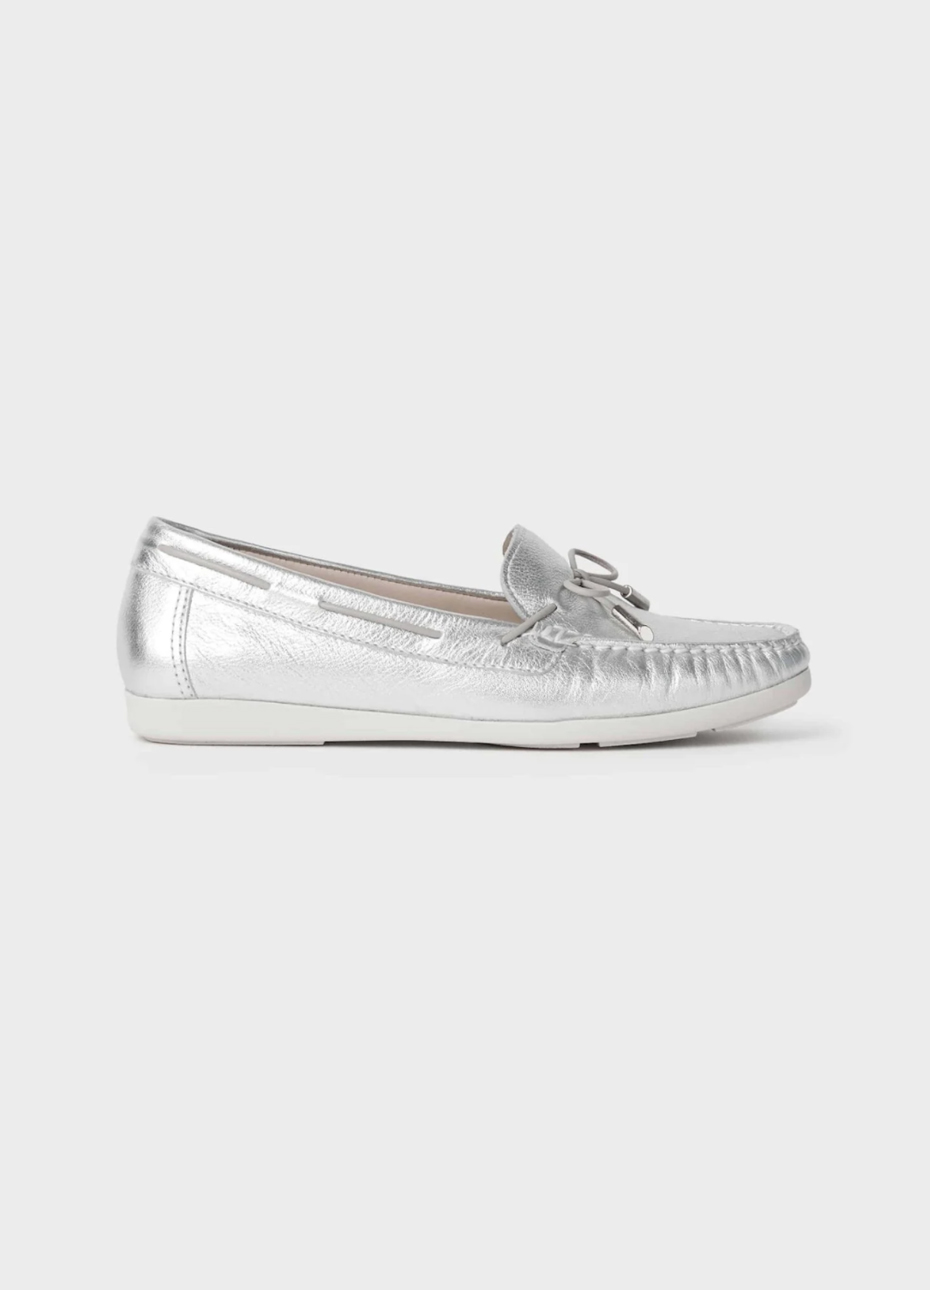 Silver moccasin flat shoe from Hobbs.